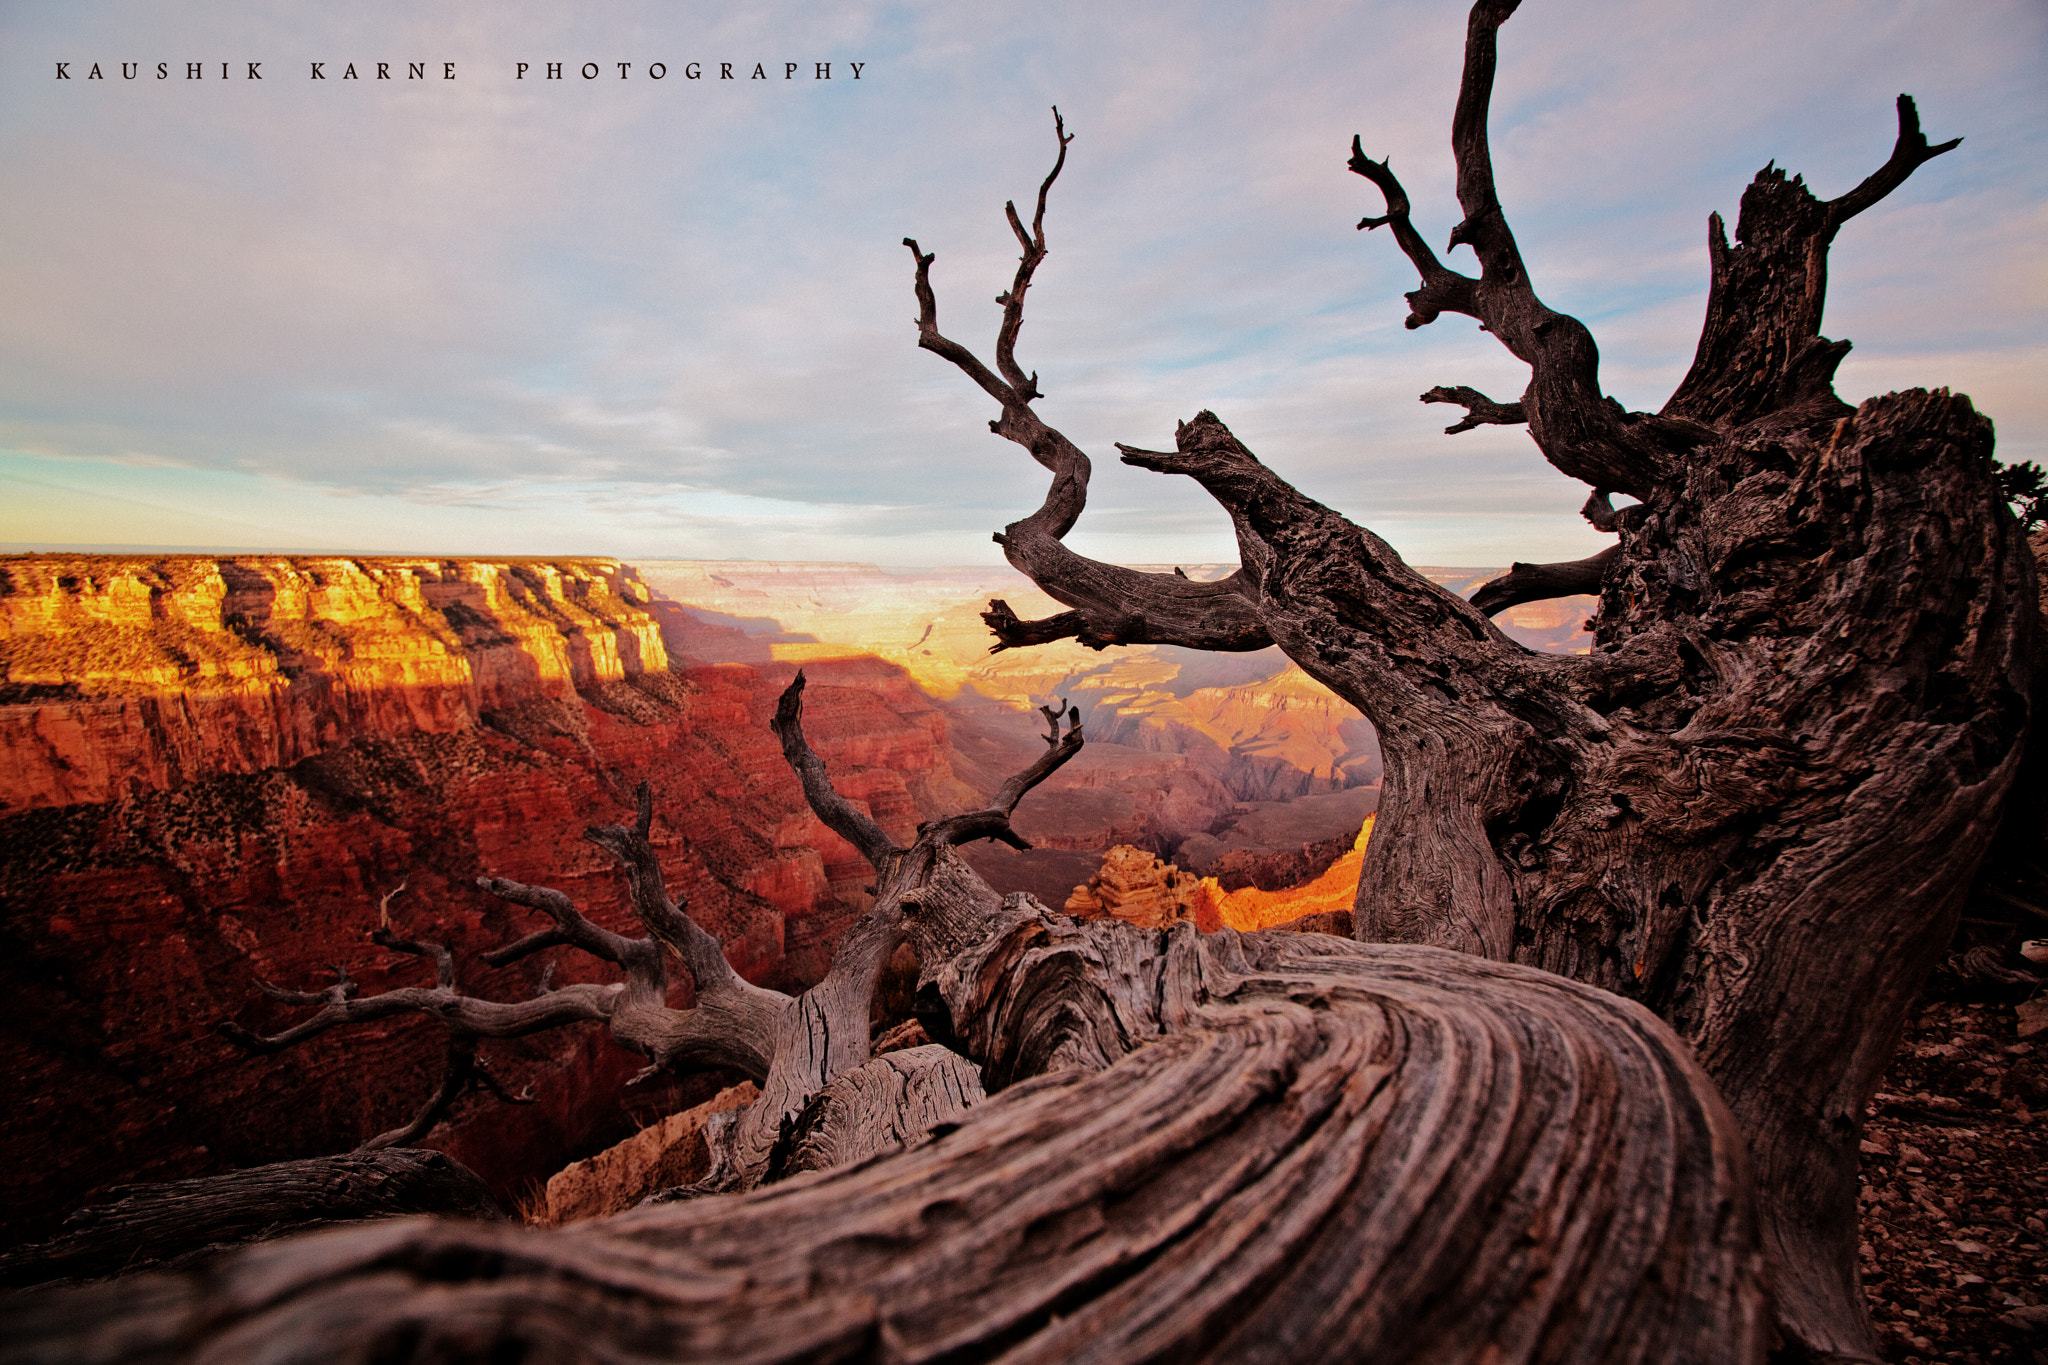 Photograph Spectacular Grand Canyon by Kaushik Karne on 500px